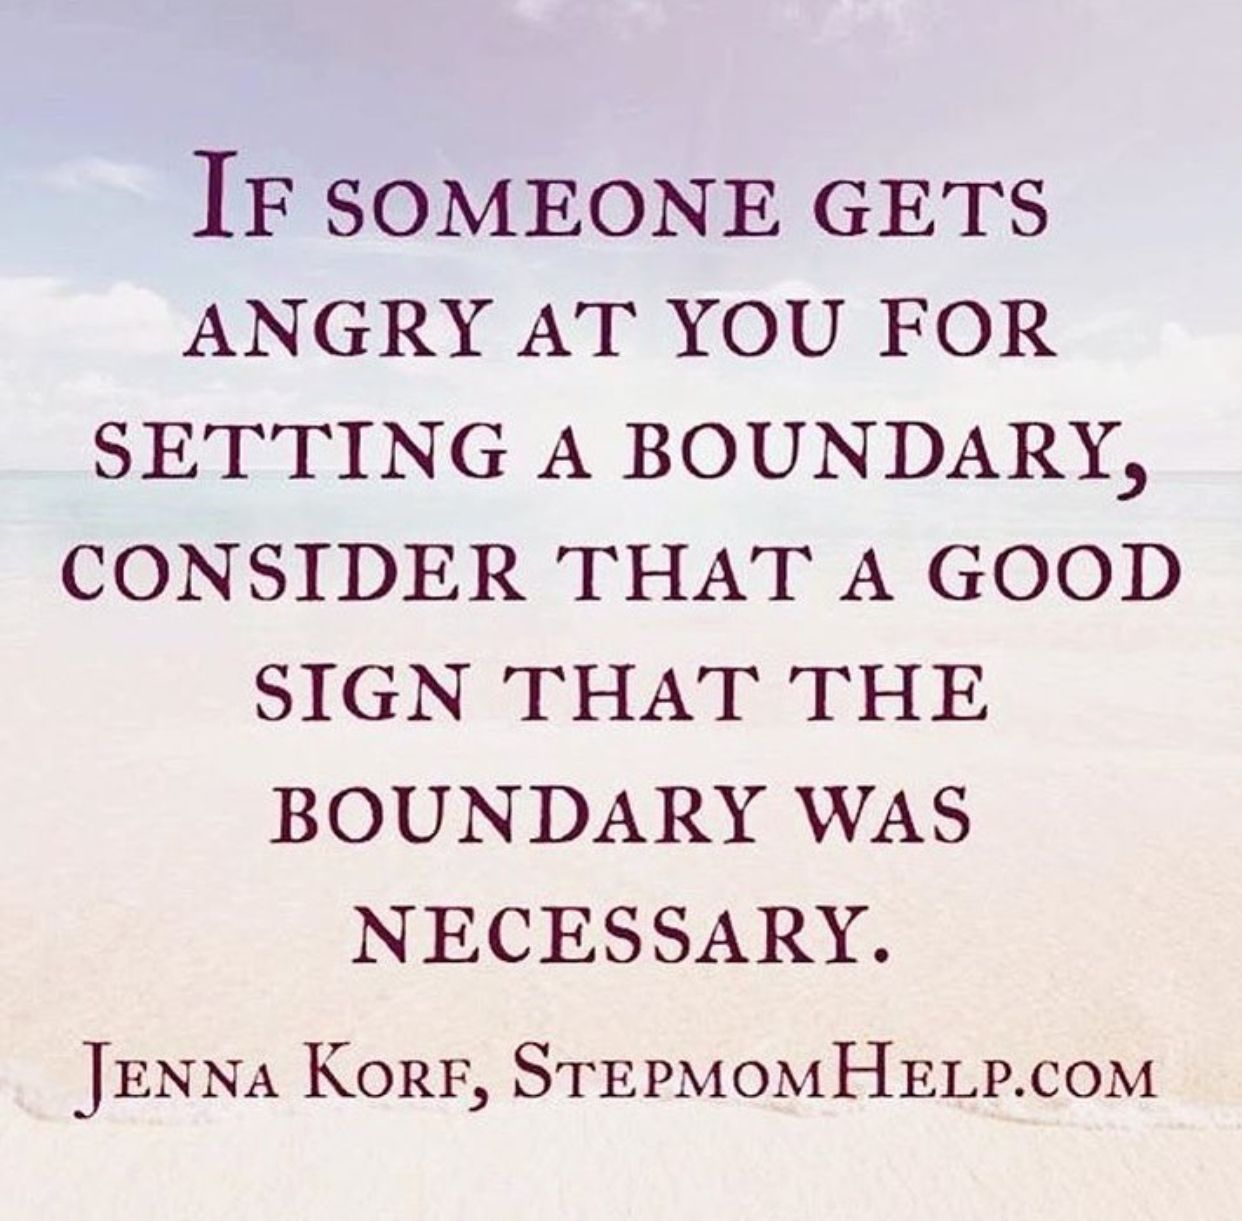 Boundaries are a good thing, especially if its dealing